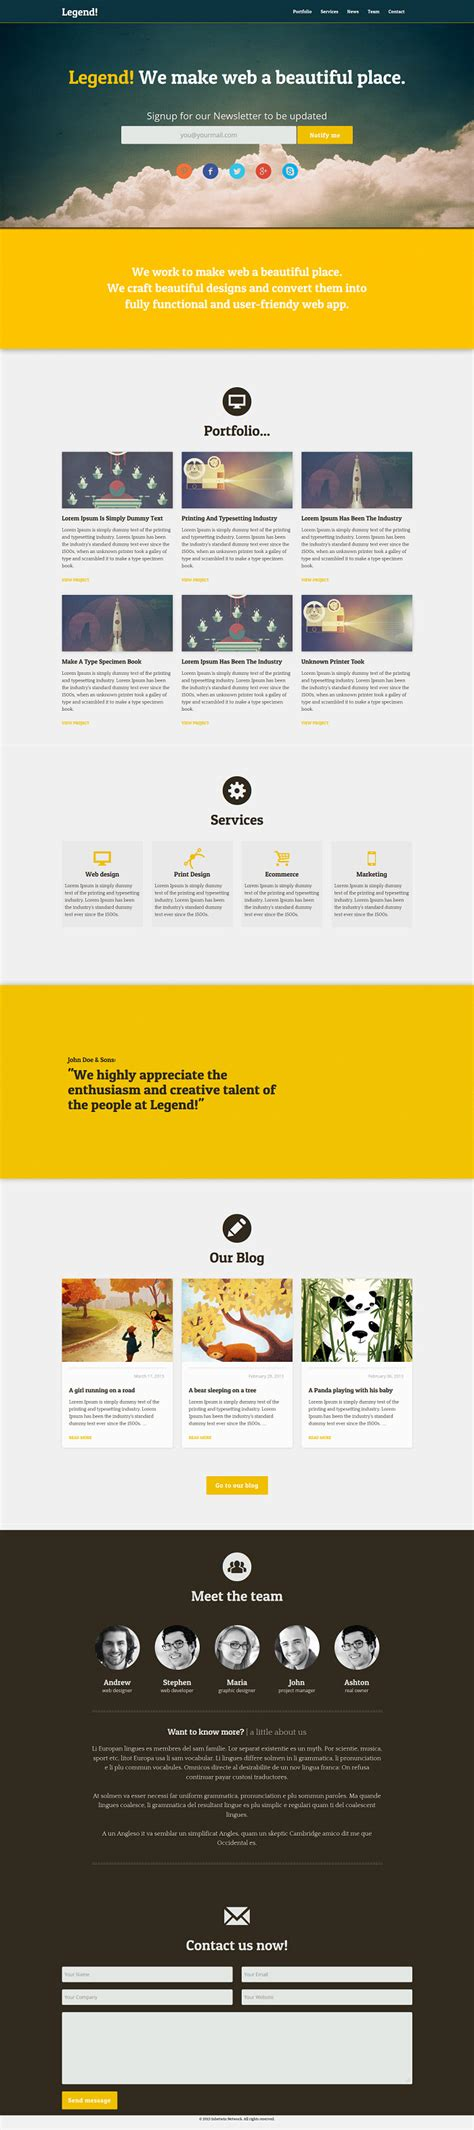 Free Responsive Web Templates With Psd Freebies Graphic Design Junction Graphic Design Web Templates